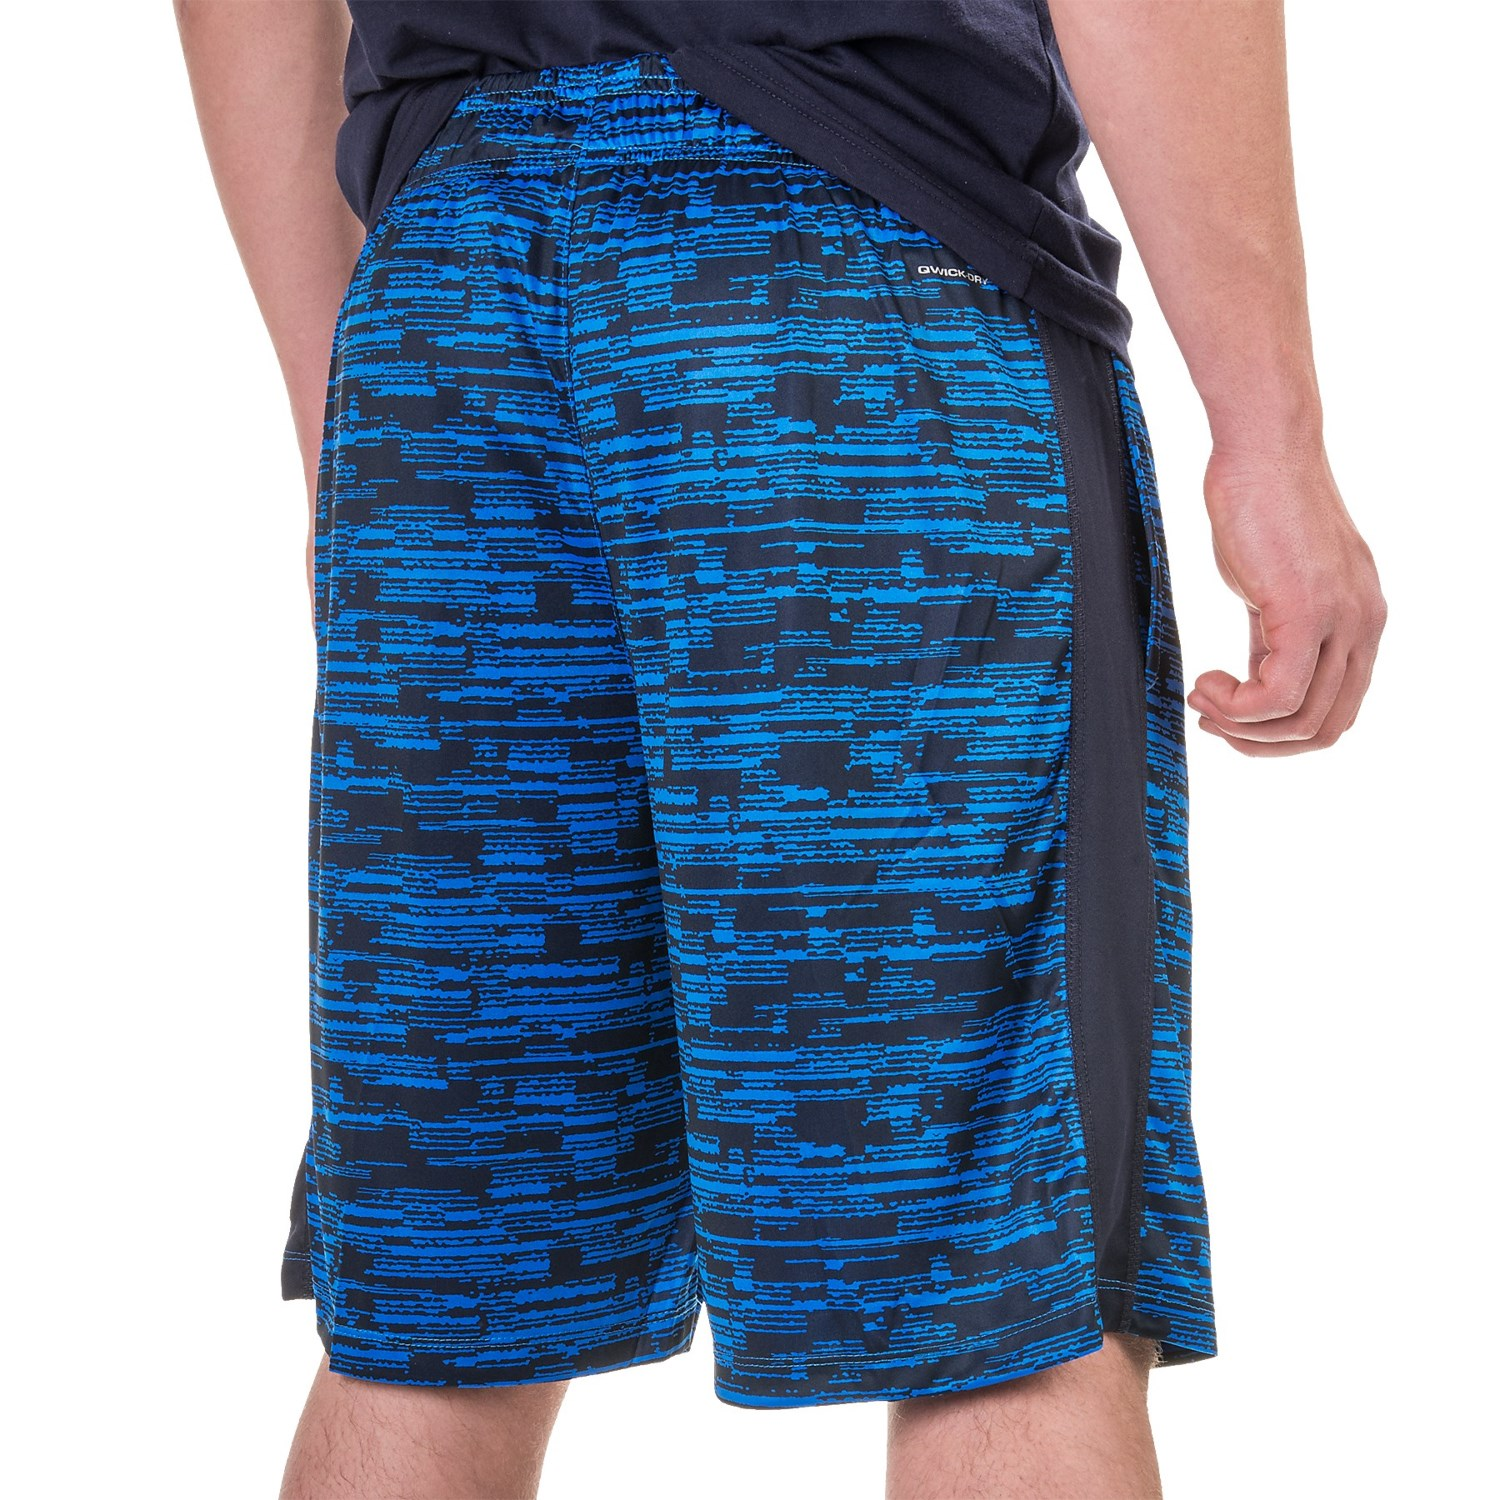 Layer 8 Printed Knit Training Shorts (For Men) - Save 78%